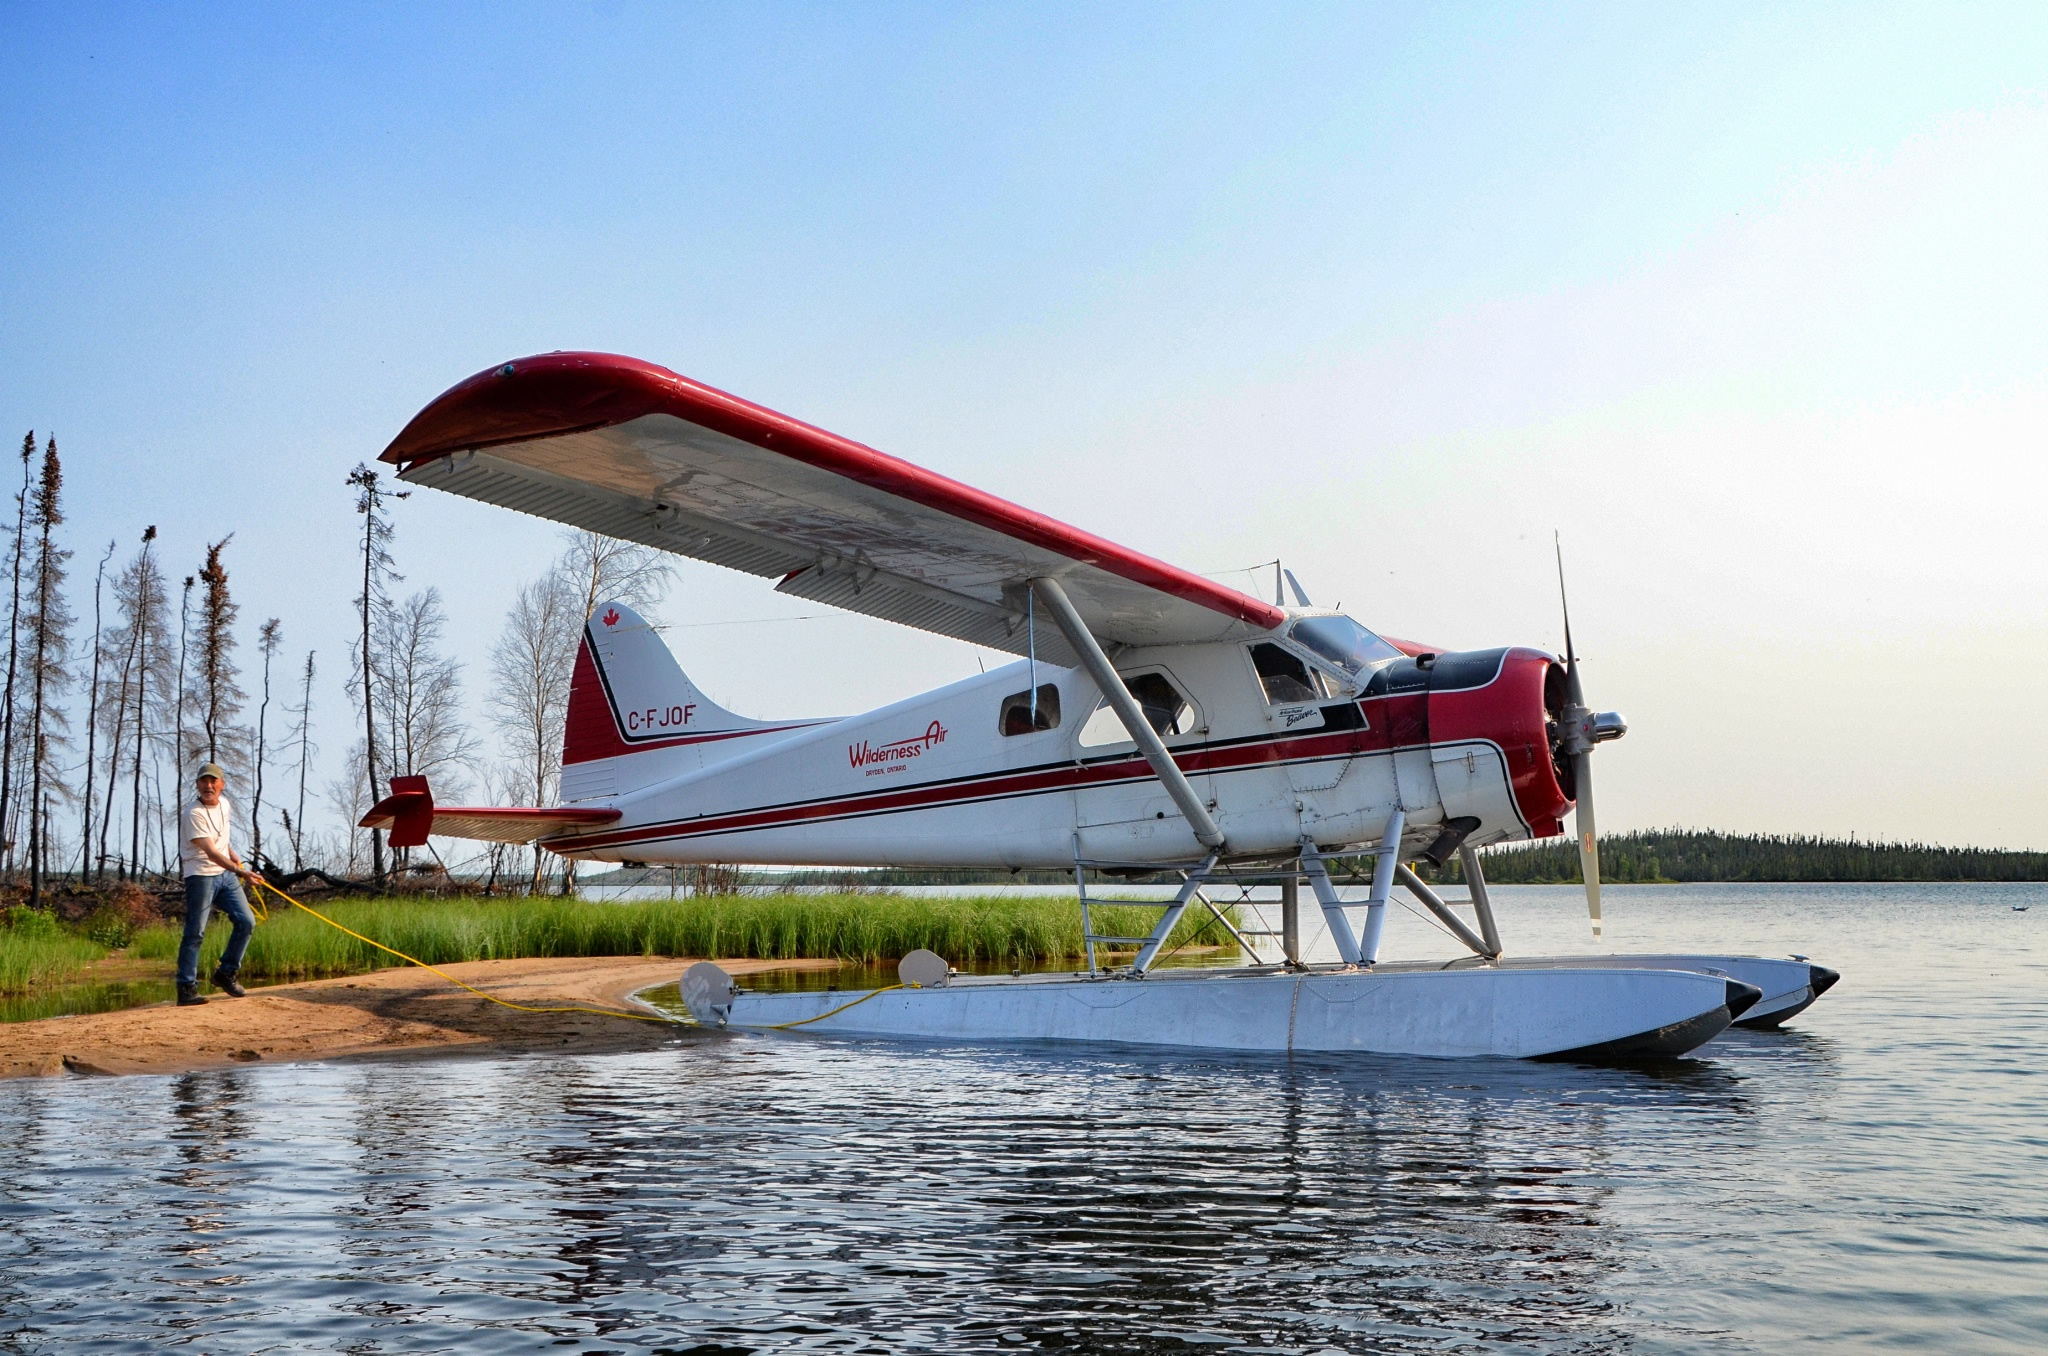 The iconic de Havilland Beaver at Gangler's North Seal River Lodge, Egenolf Lake